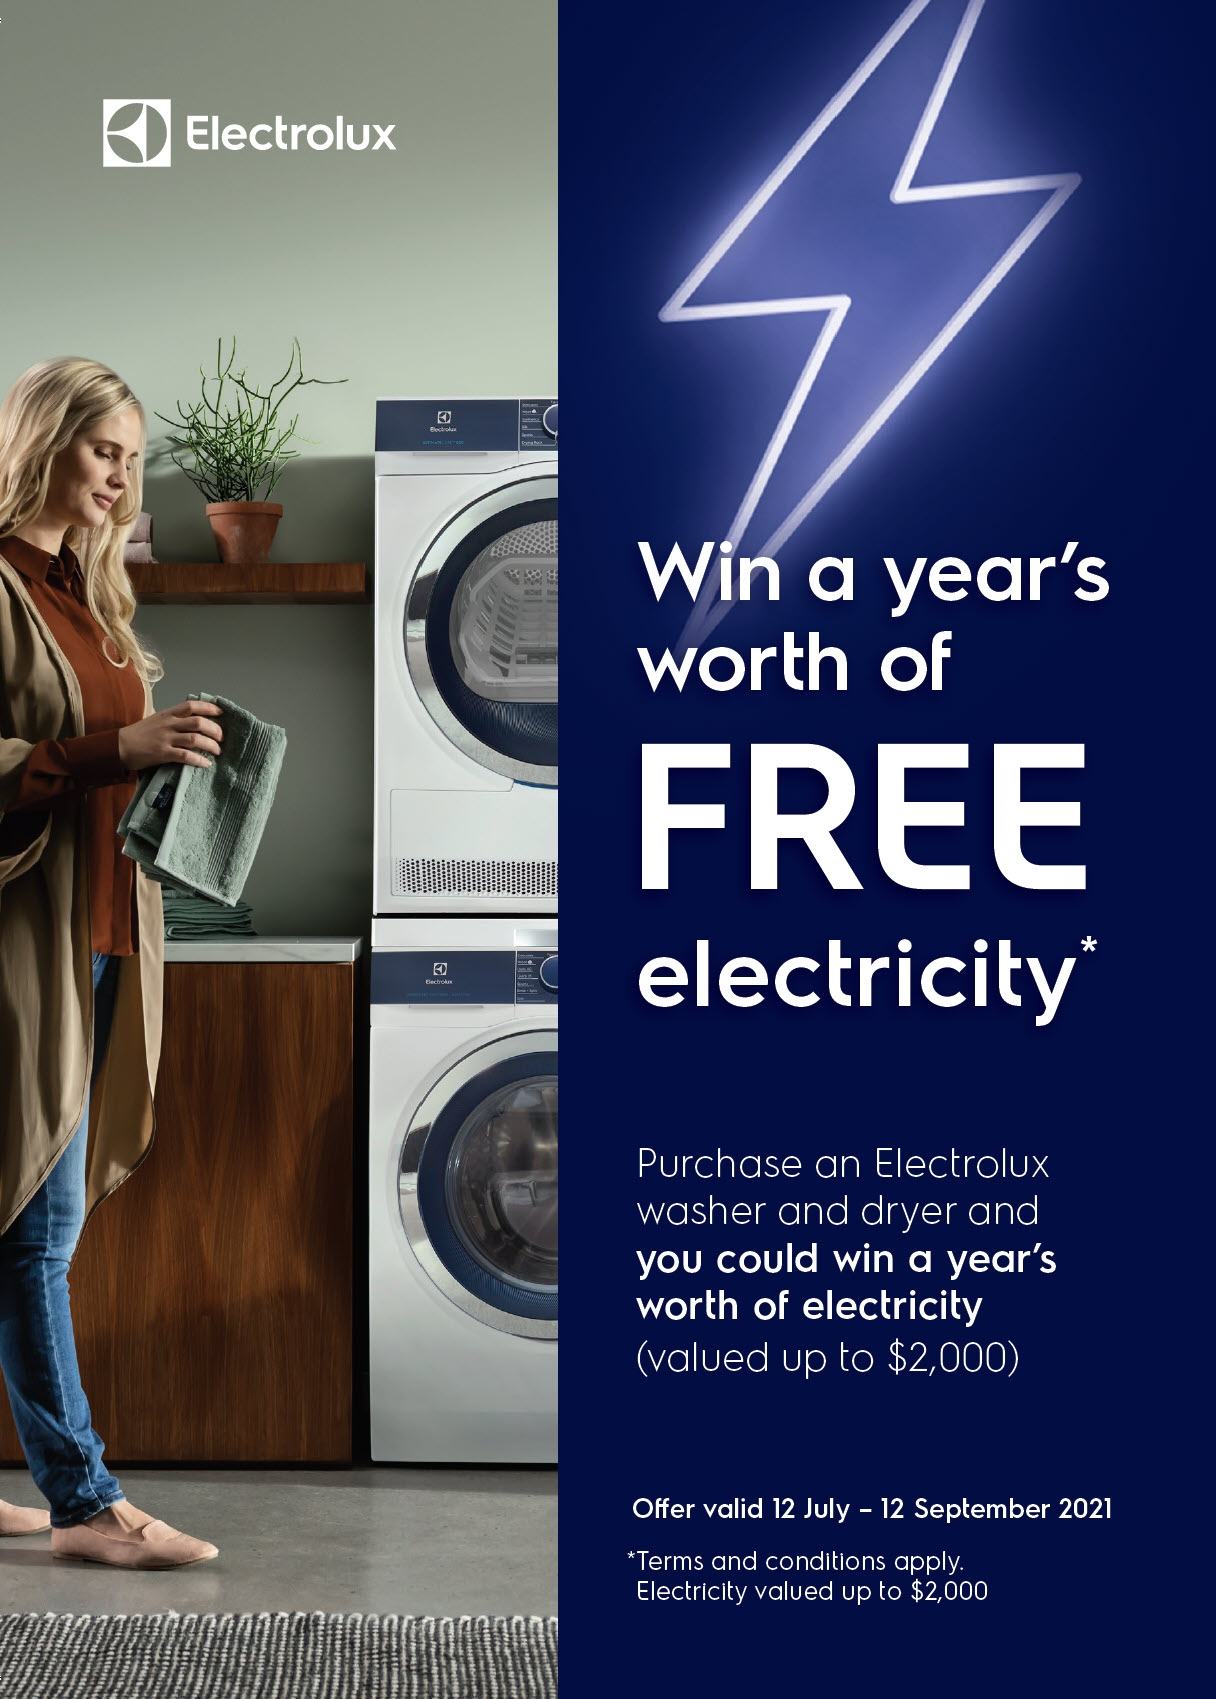 Electrolux Laundry Chance to Win promotion July12th 12th Sept